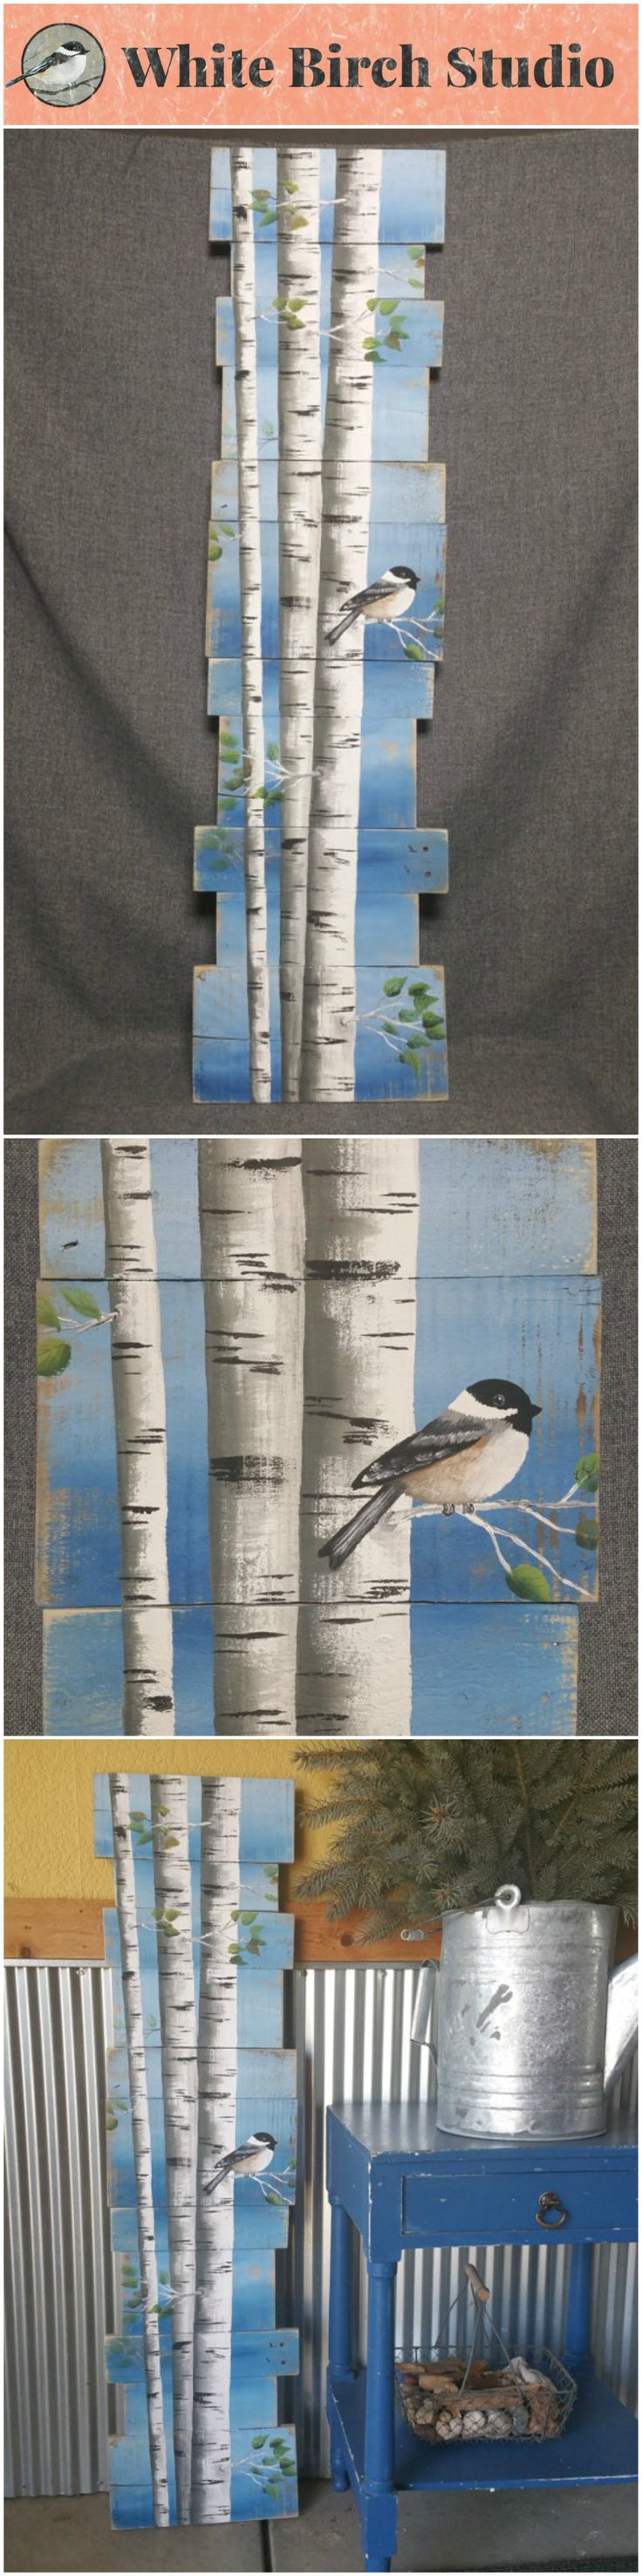 "White Birch Pallet art, Pine tree Reclaimed Wood Pallet Art, TALL Hand painted Aspen, Chickadee bird, upcycled, blue Wall art, Distressed  Original Acrylic painting on reclaimed Pallet boards. This unique piece is 46"" tall x 9-12"" wide  Perfect for that skinny wall space."